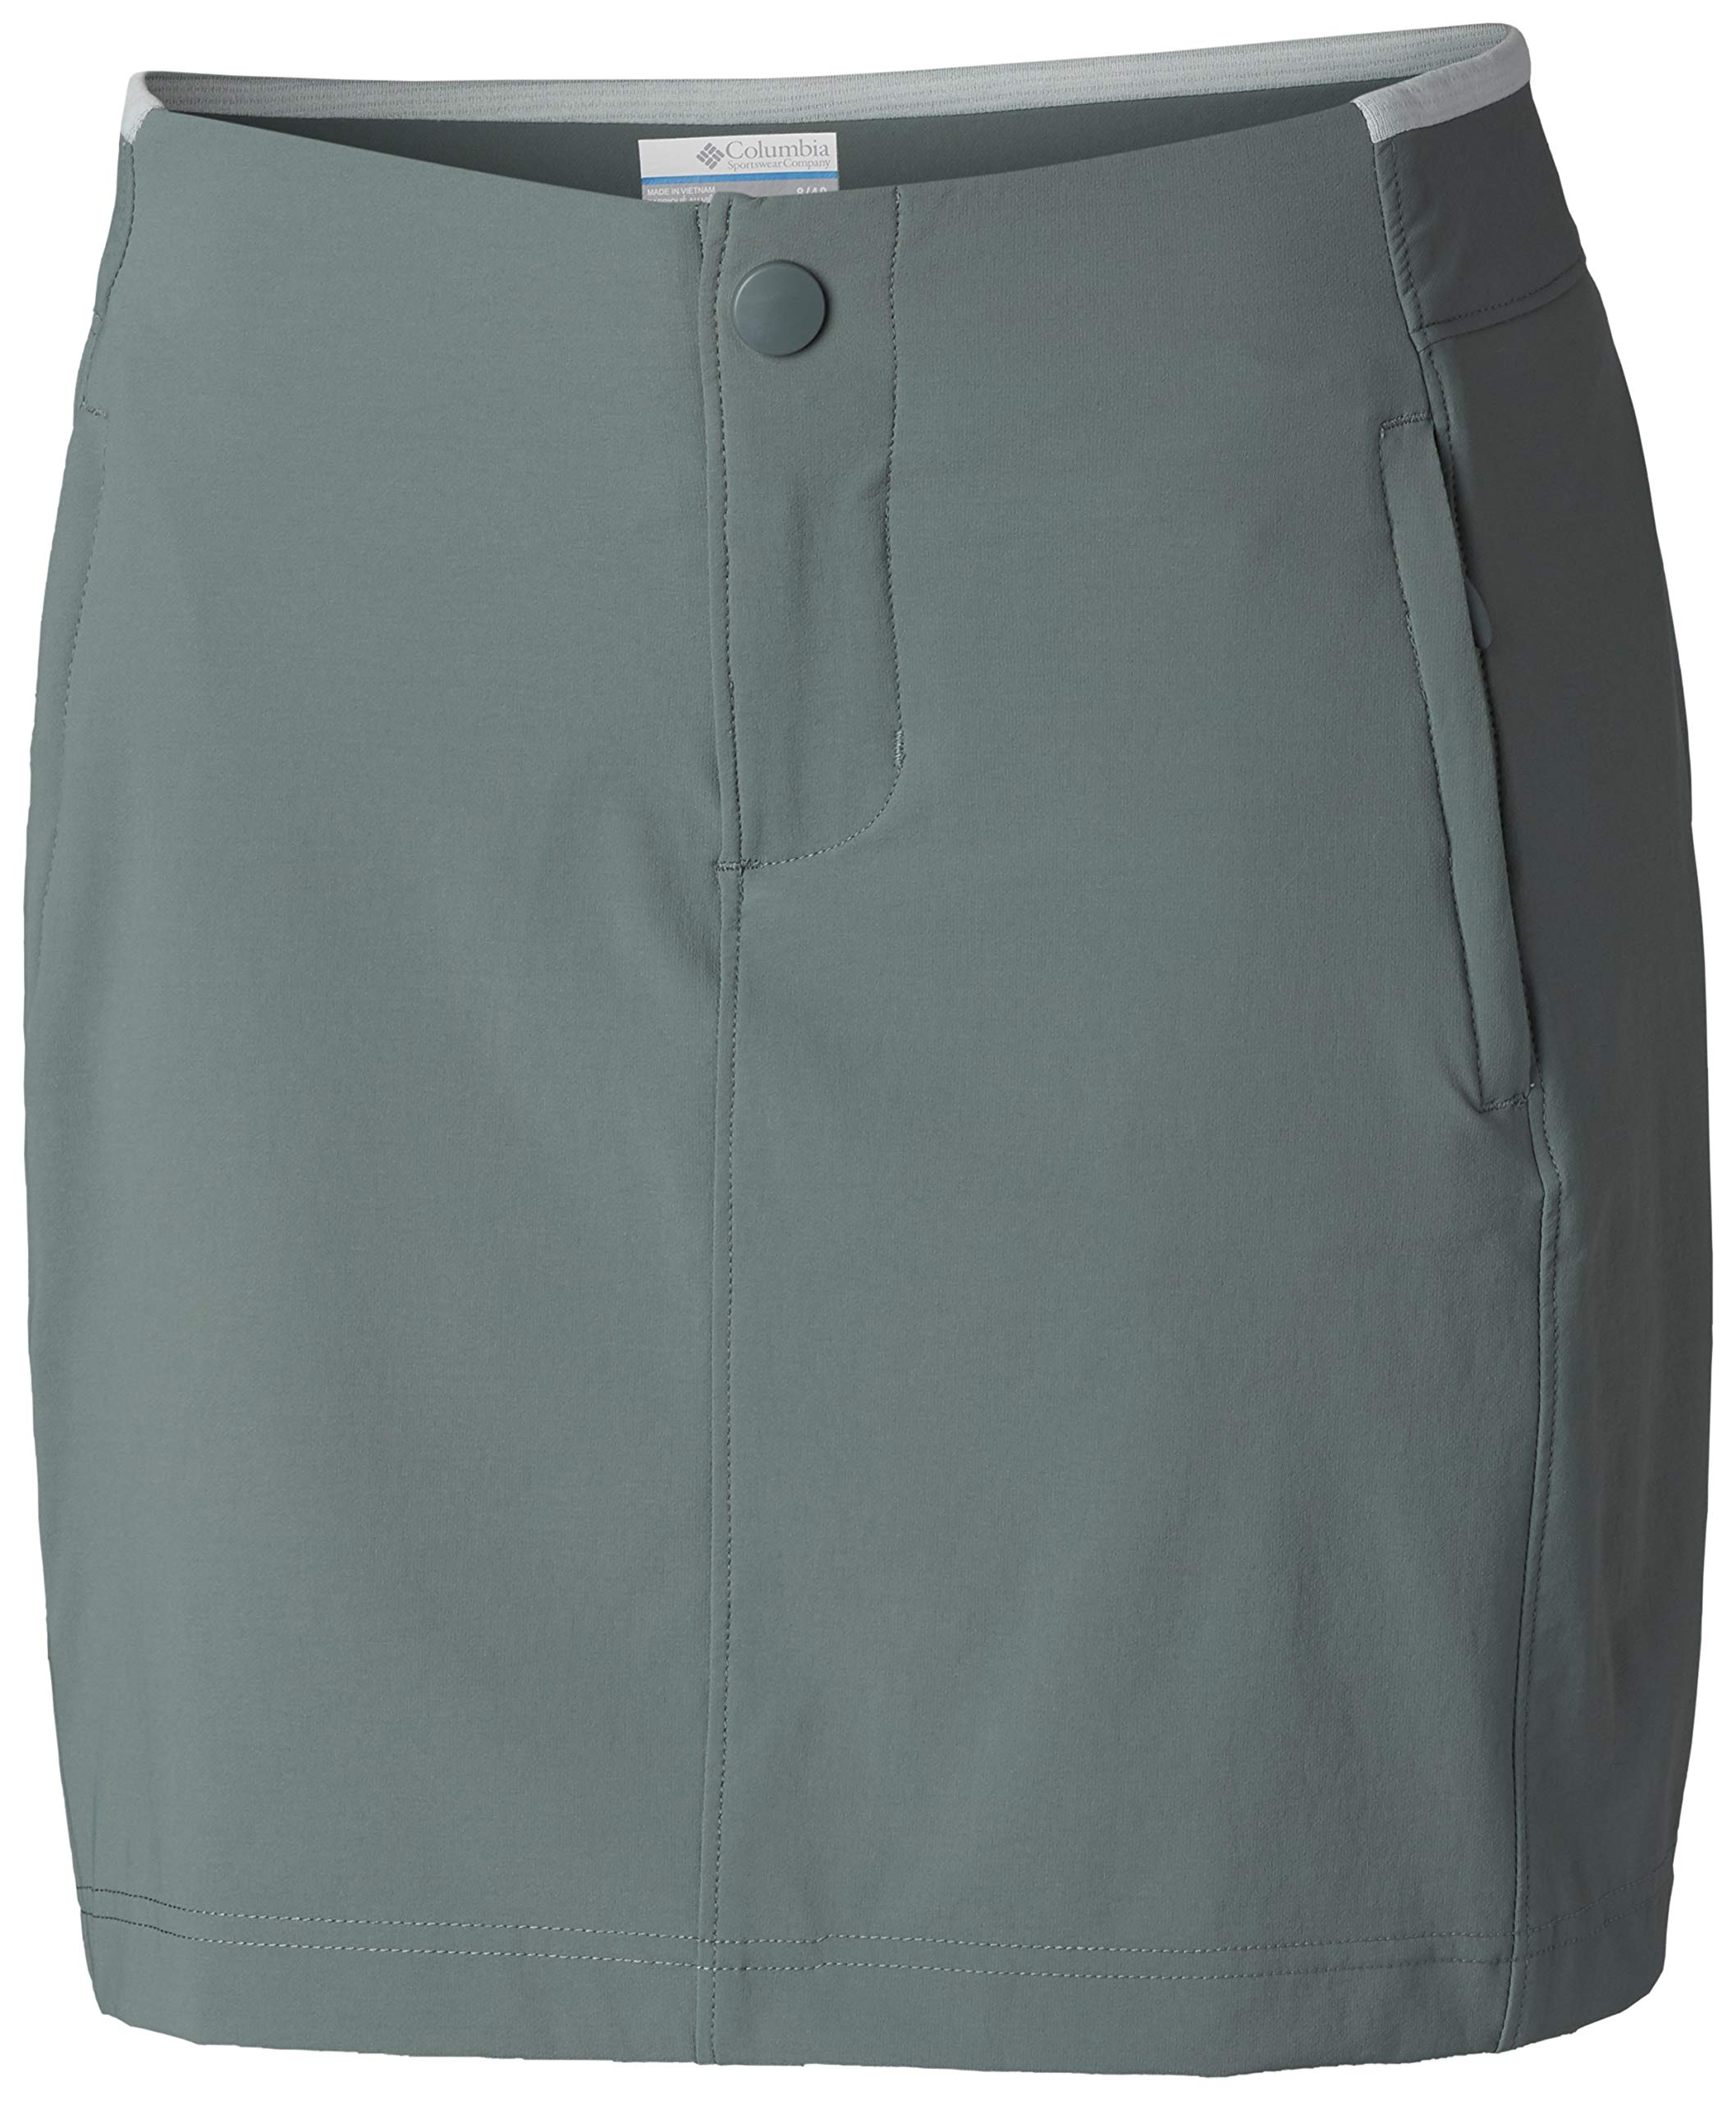 Columbia Women's Bryce Peak Skort, Pond, 16 by Columbia